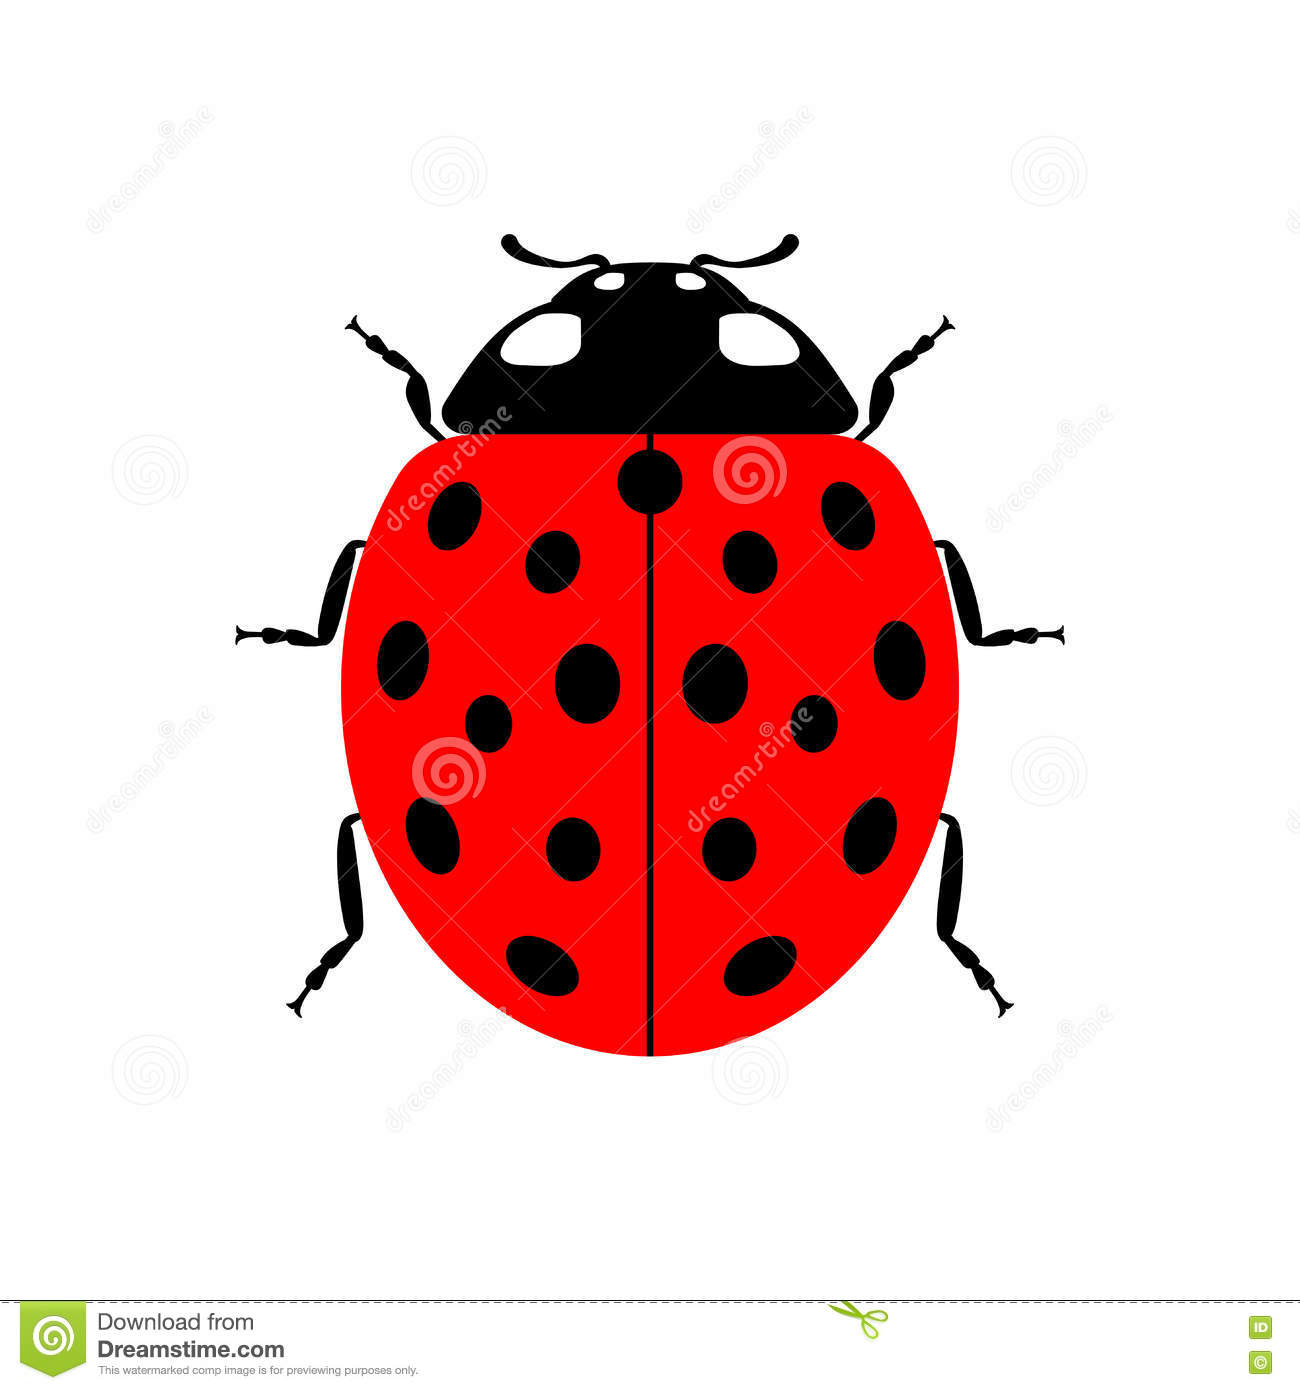 Charming Download Ladybug Red Cartoon Icon Realistic Stock Vector   Illustration Of  Background, Insect: 76310668